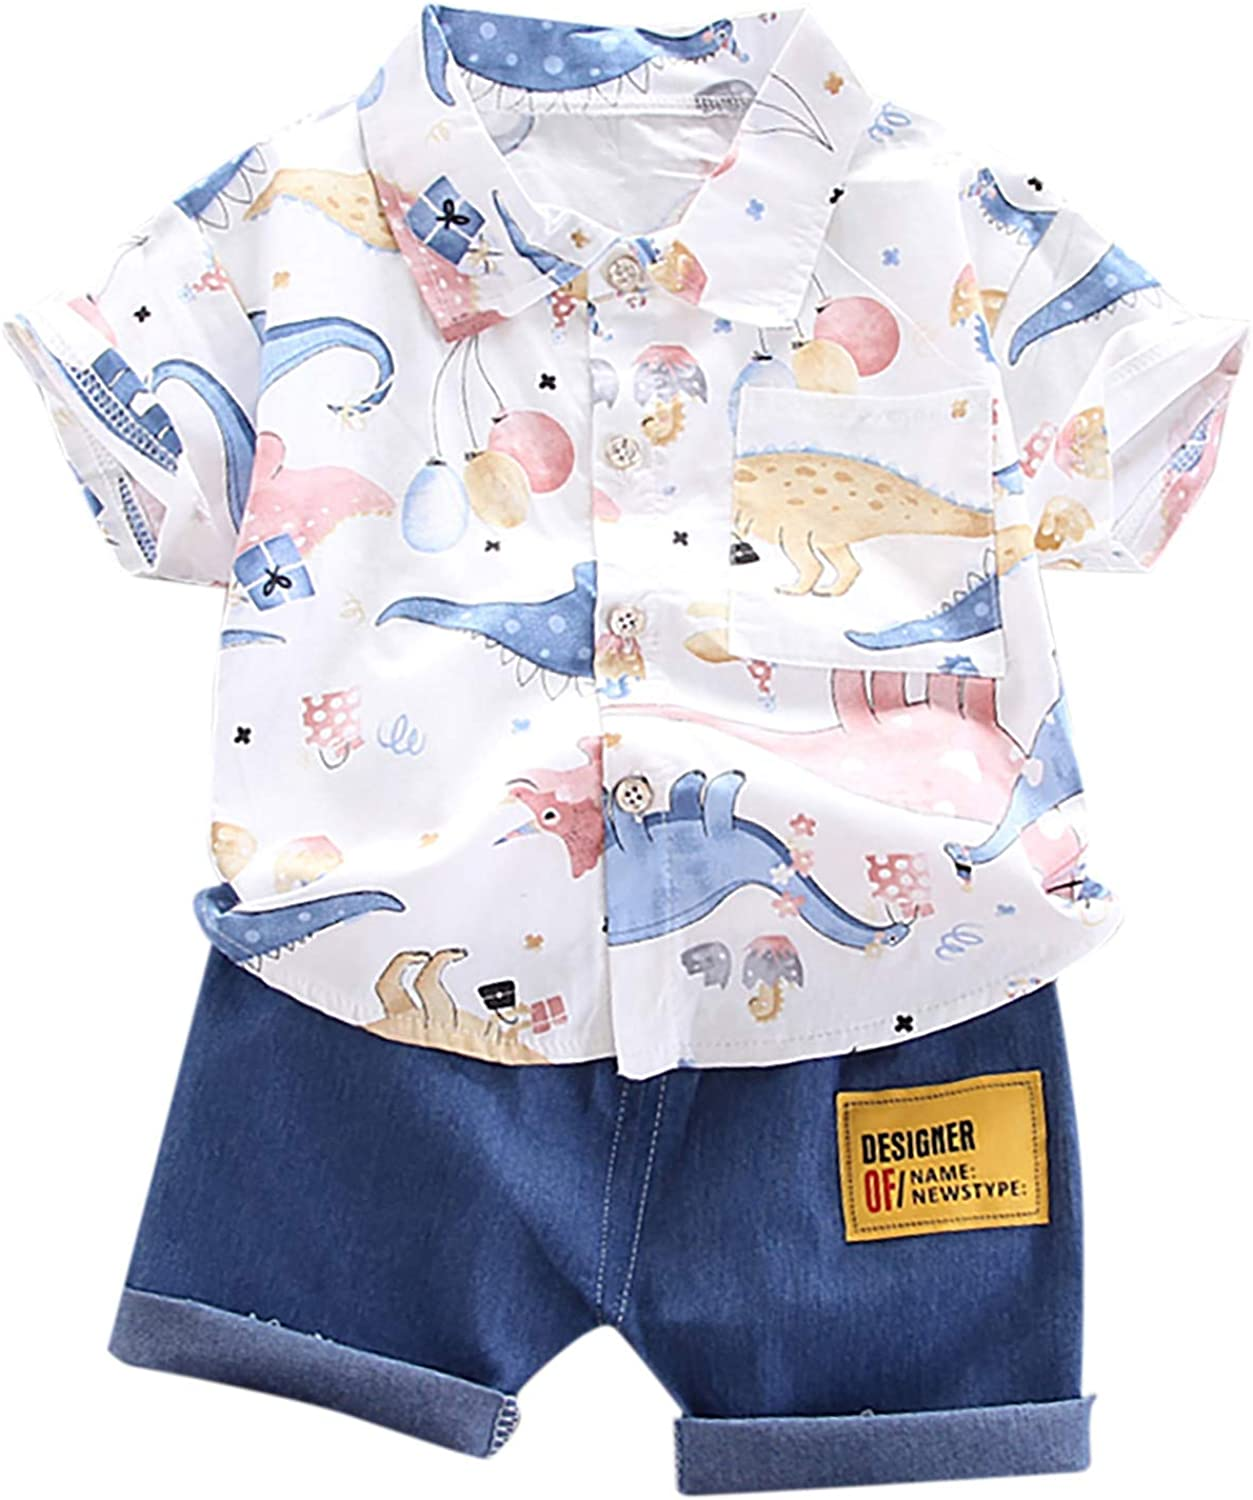 Baby Kids Summer Outfits,1-4Years Infant Baby Boys Clothes Set Cartoon T-Shirt Tops+Shorts Summer Outfits